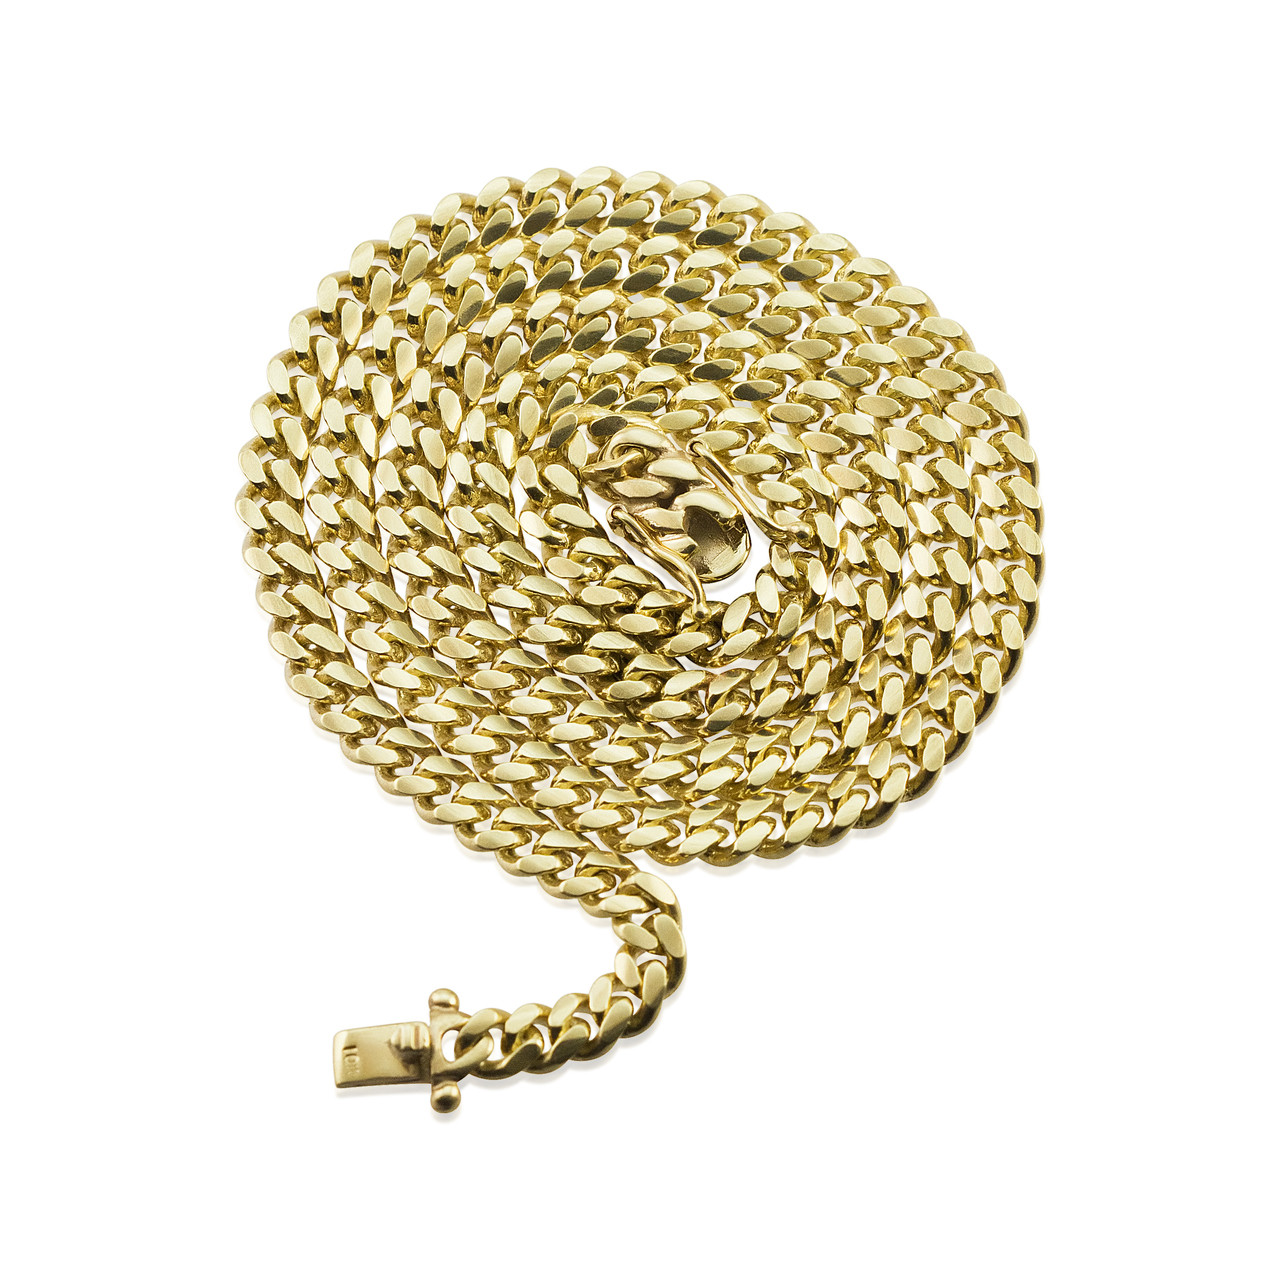 10k Gold Cuban Link Chain >> 10k Yellow Gold 10mm Miami Cuban Link Chain 30in